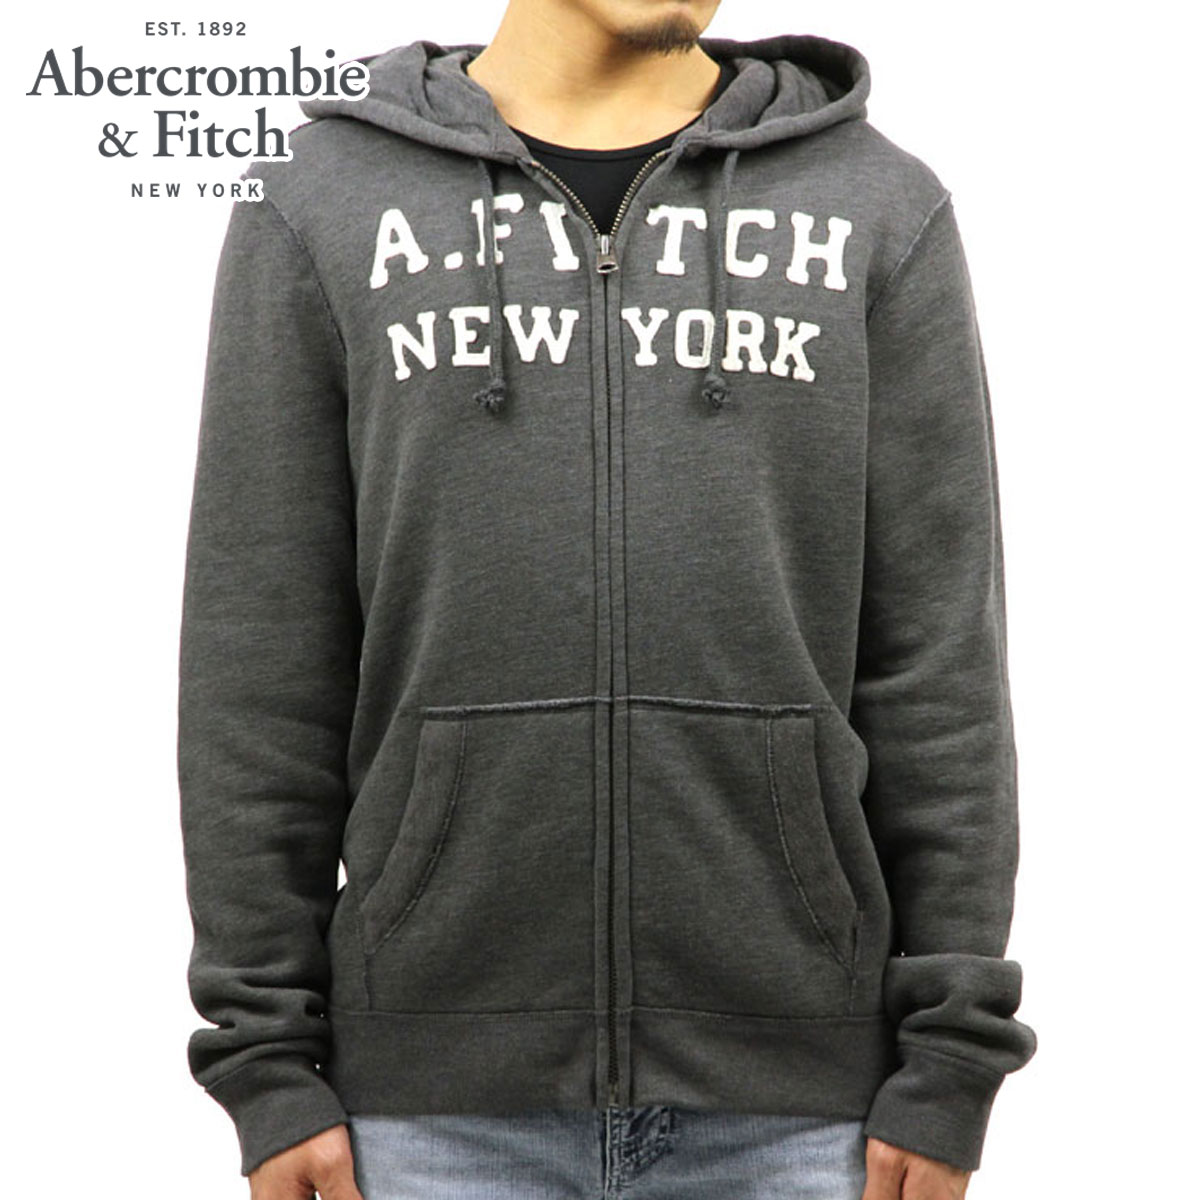 15%OFFセール 【販売期間 12/4 20:00~12/11 1:59】 アバクロ Abercrombie&Fitch 正規品 メンズ ジップアップパーカー Logo Graphic Full-Zip Hoodie 175-122-0031-015 D00S20